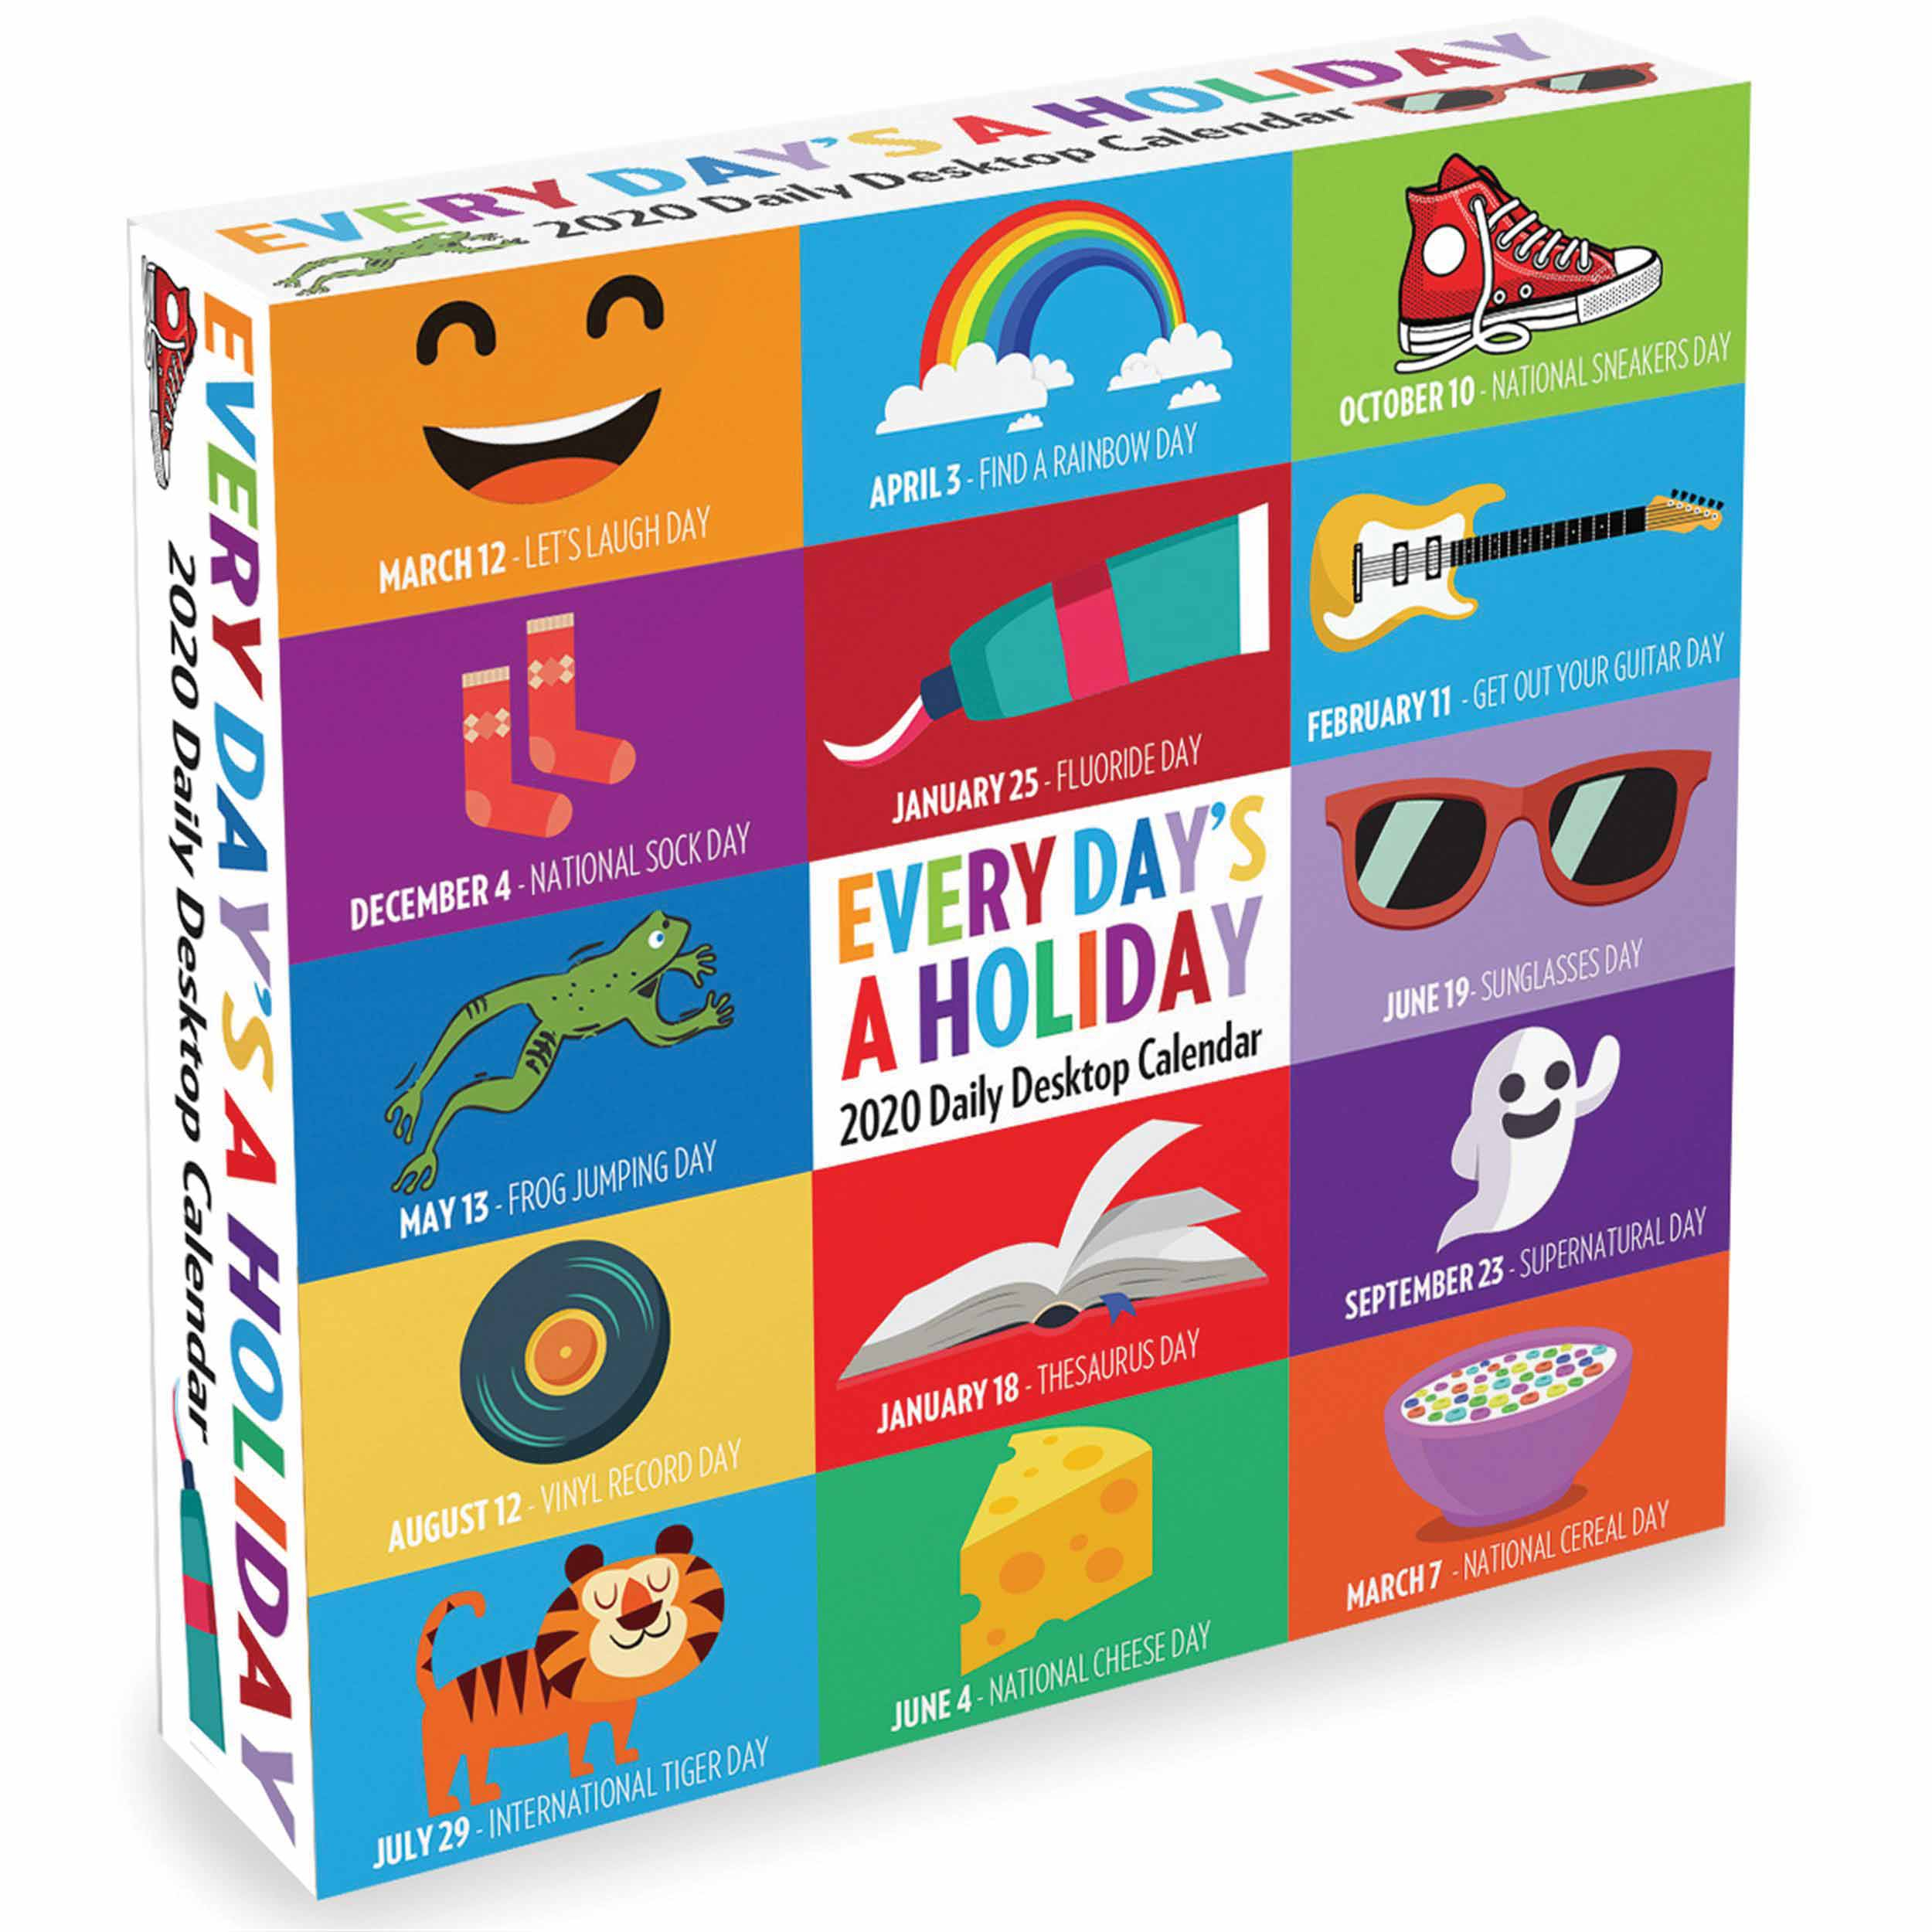 Every Day's A Holiday Desk Calendar 2020 At Calendar Club In Every Day Is A Holiday Calendar